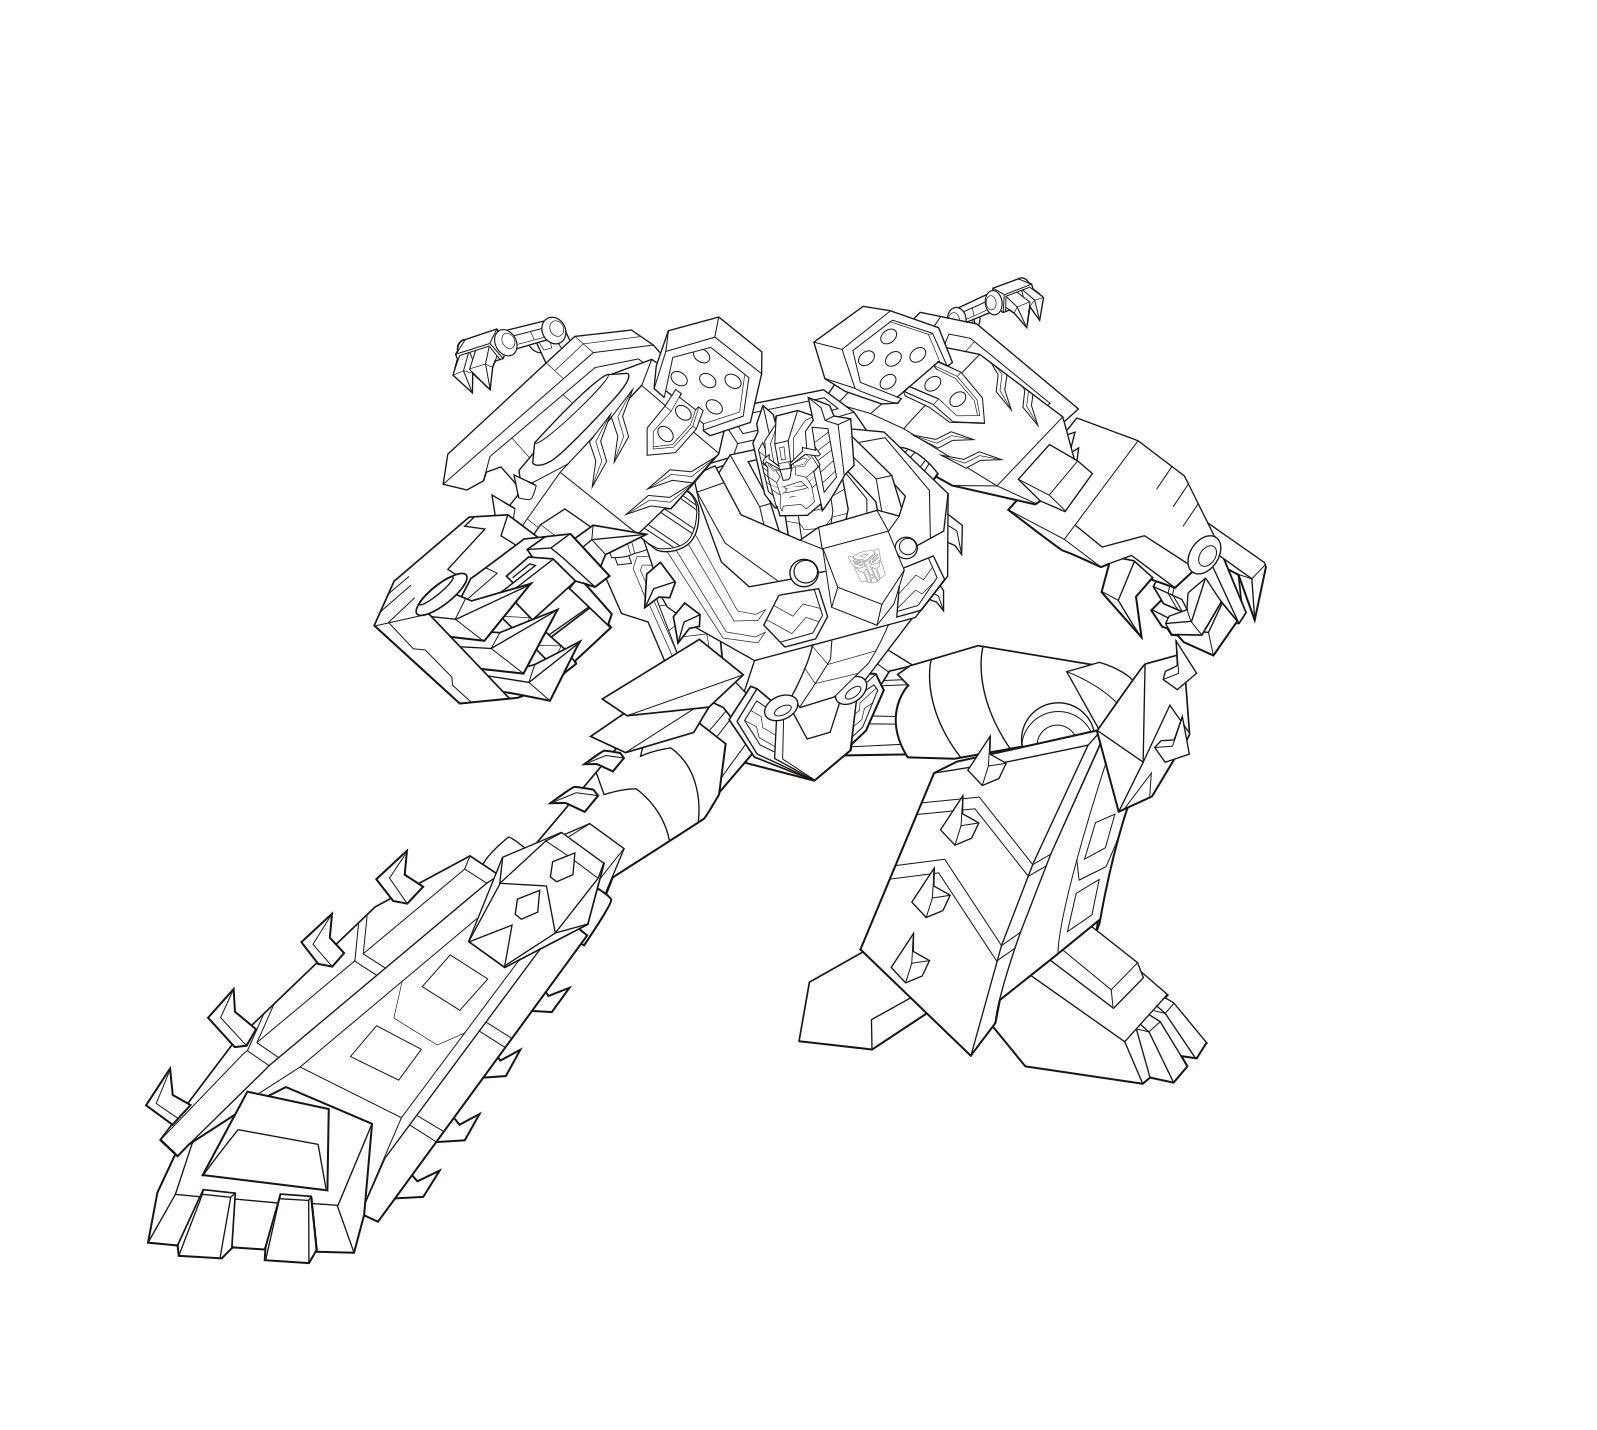 soundwave lineart by markerguru | Sound waves, Coloring pages ... | 1430x1597